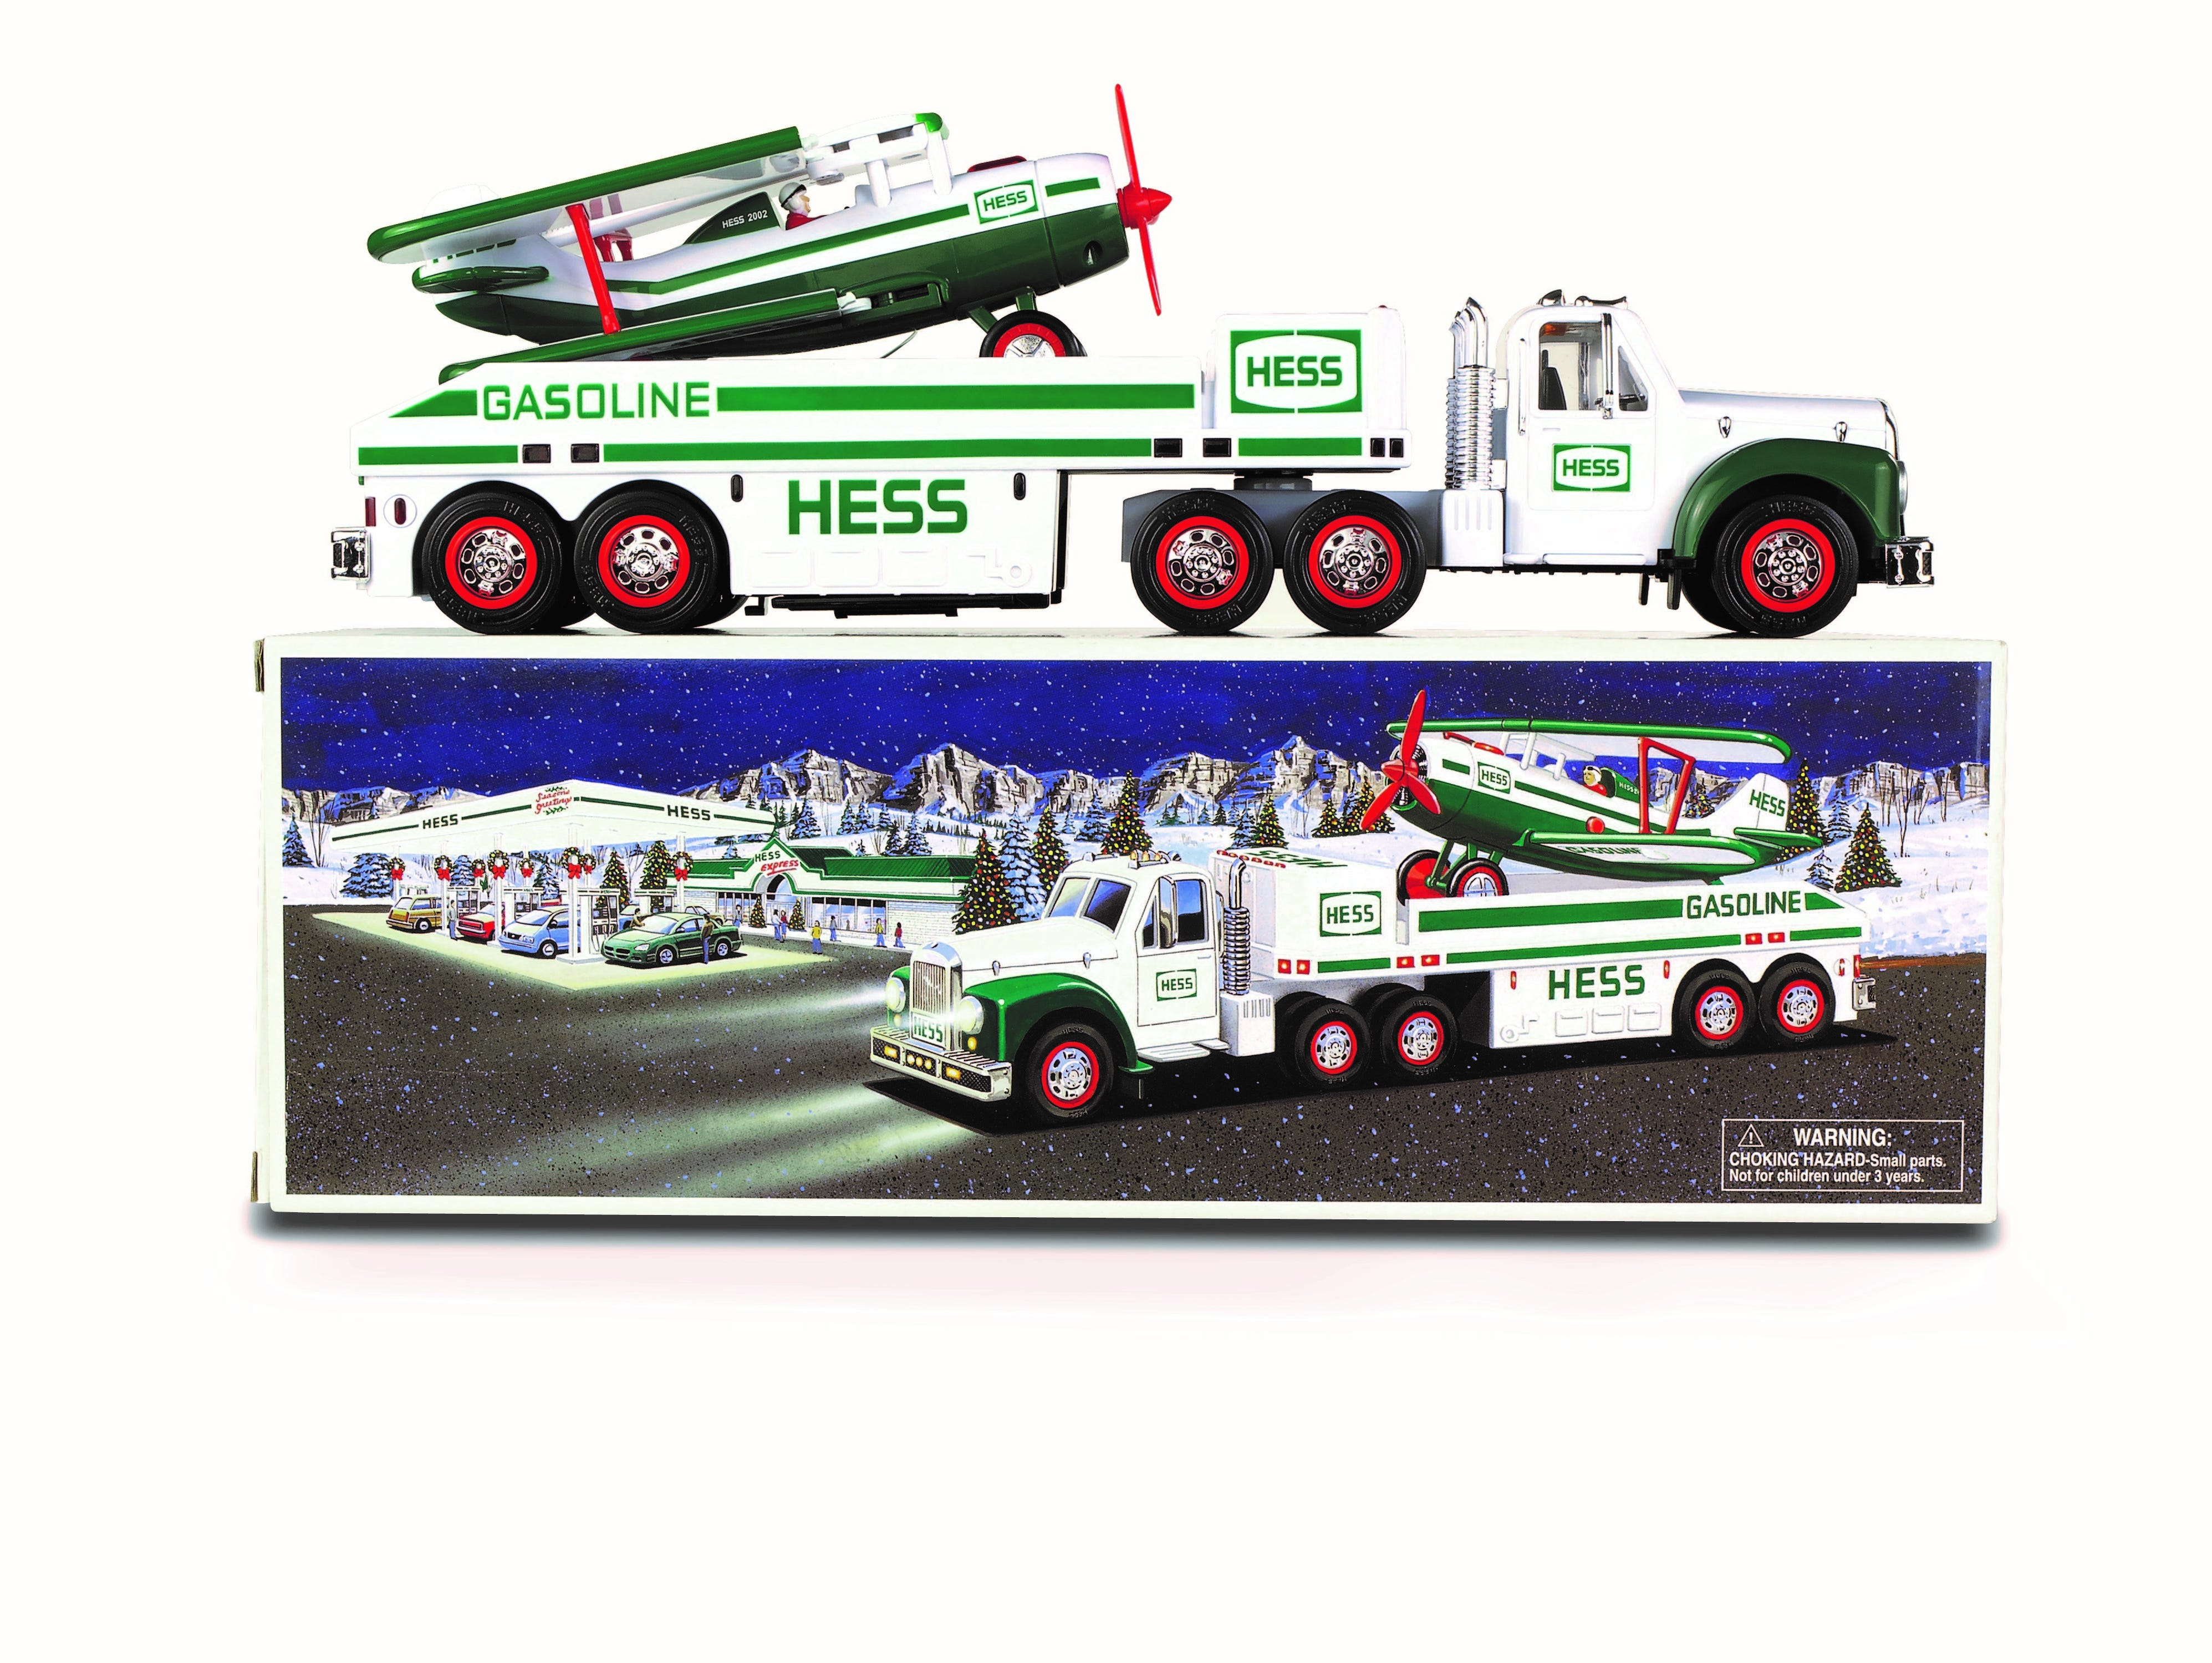 The 2002 Hess toy truck.